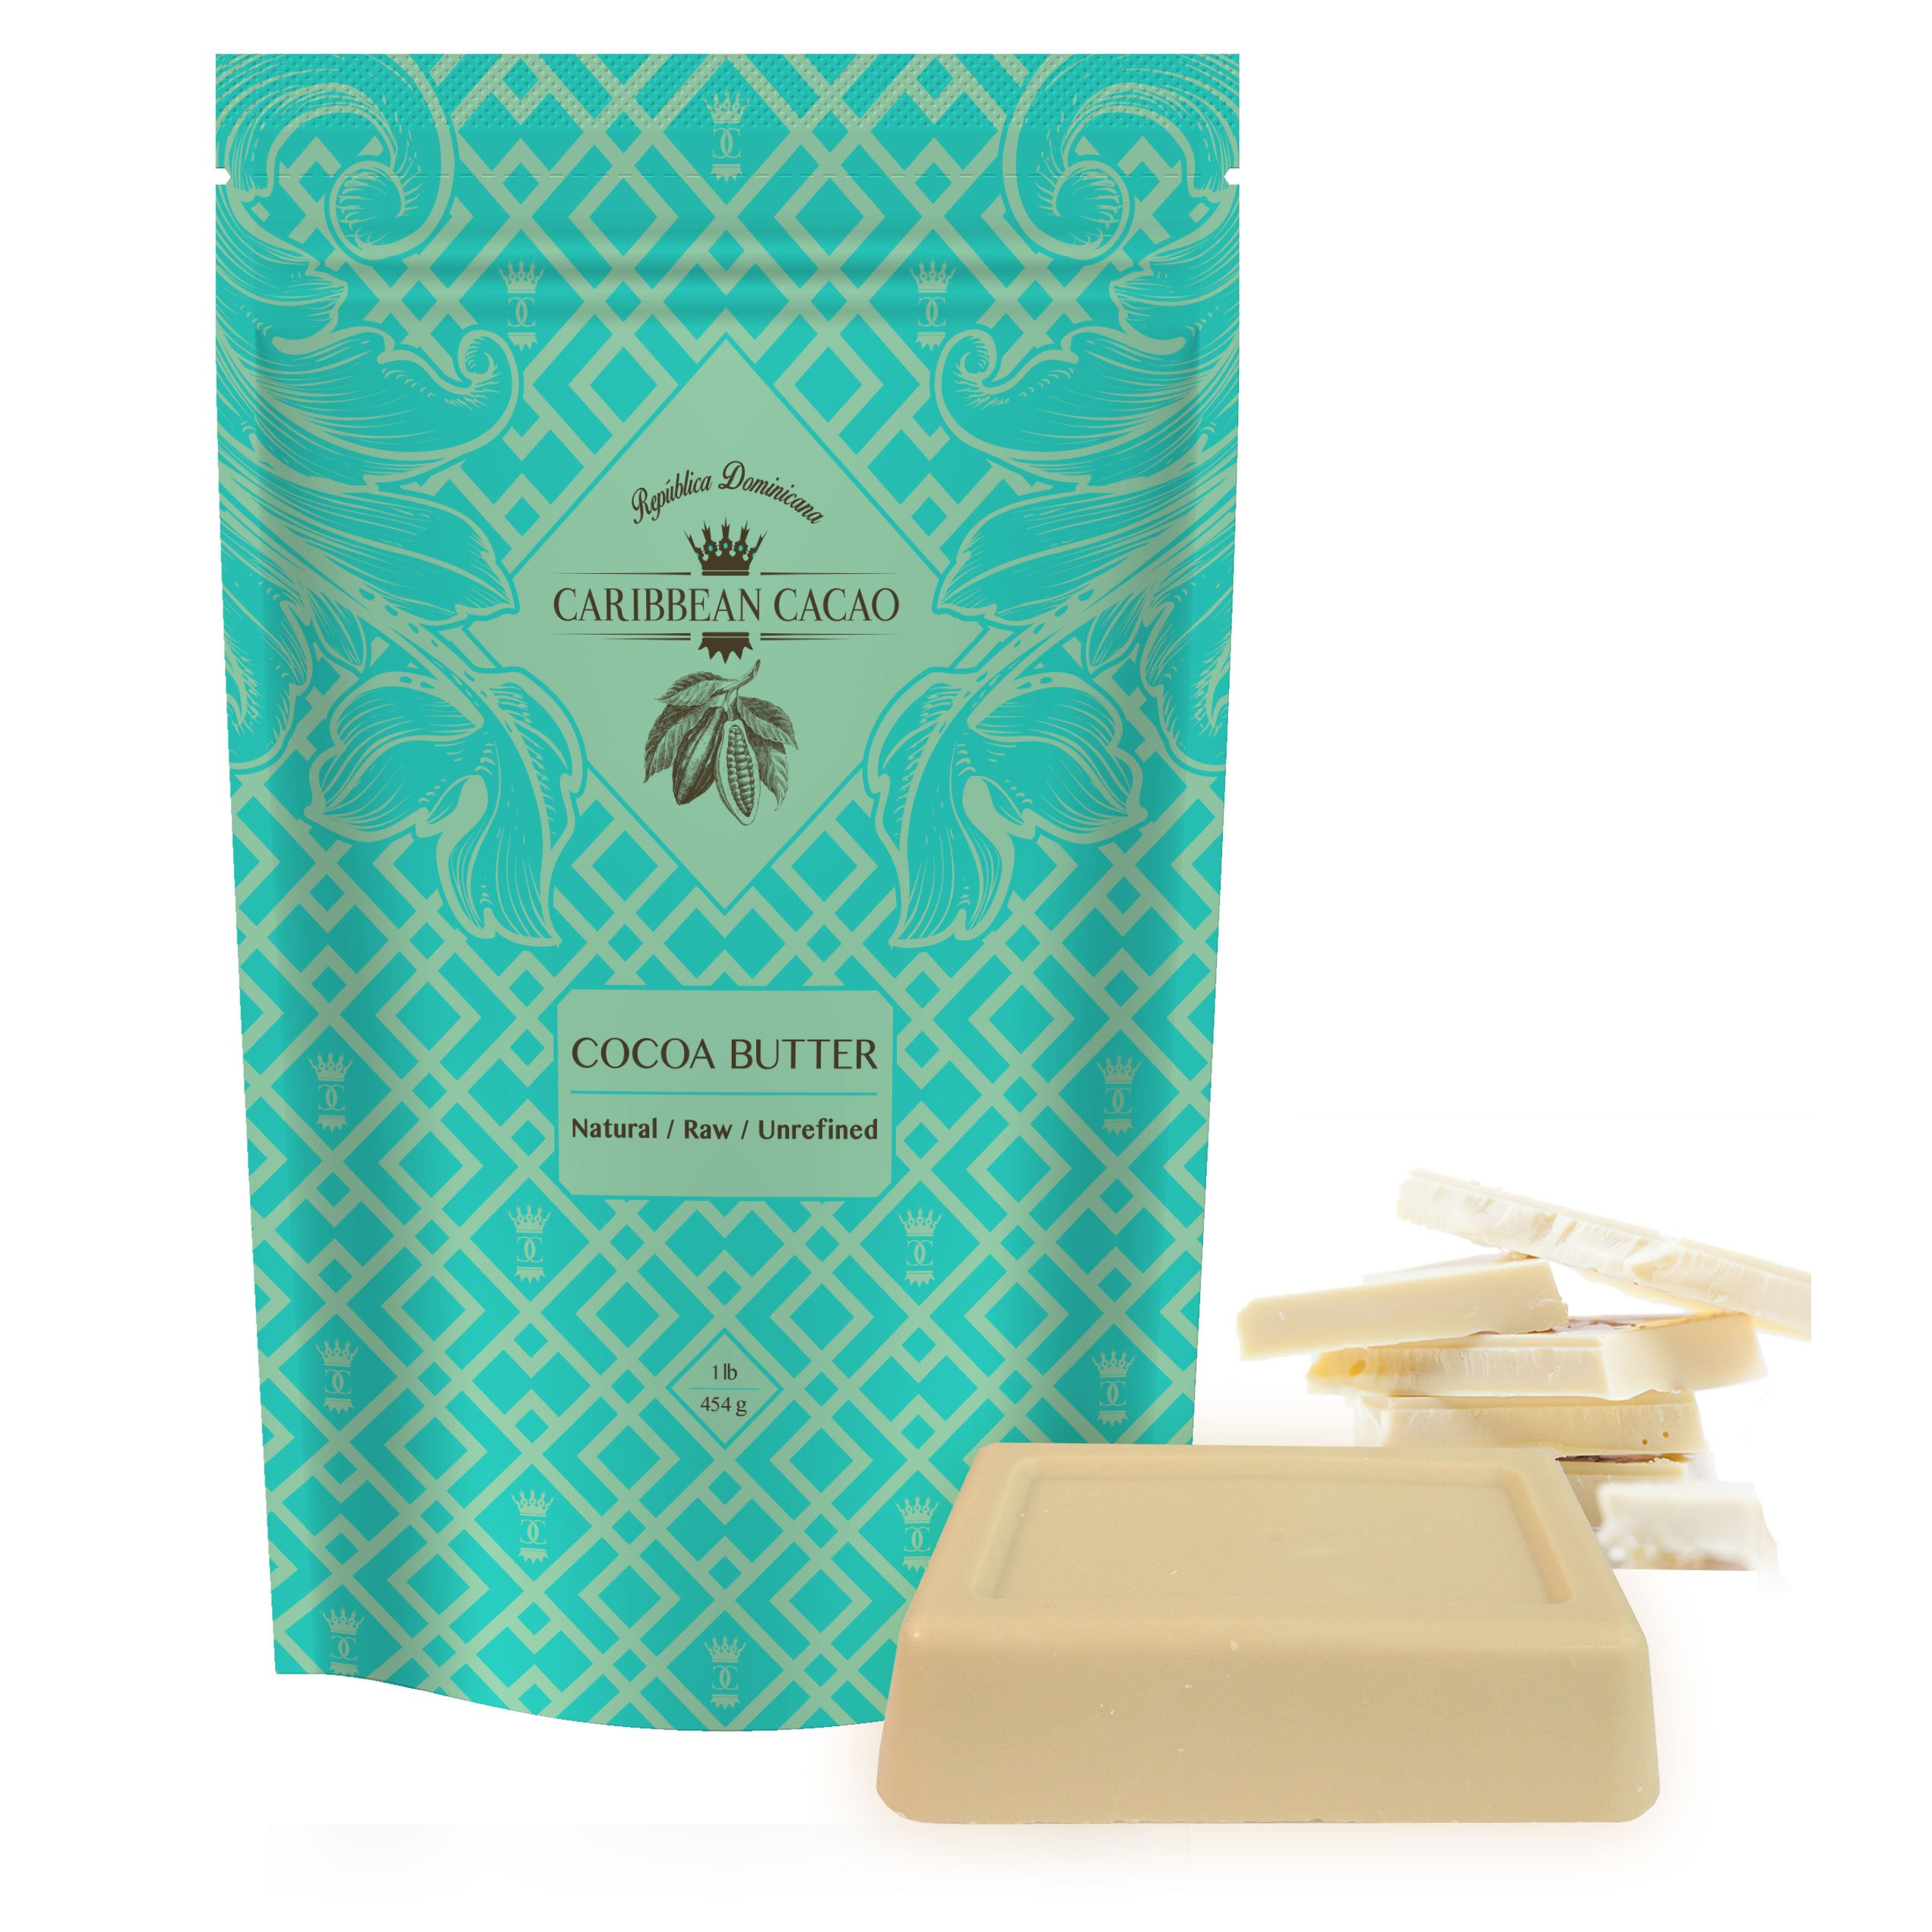 Caribbean Cacao Ultimate Cocoa Butter - Delightfully Rich Scent & Highest Quality, From our exclusive source in the Dominican Republic. 1 LB Body Butter Bar For Stretch Marks, Dry Skin, Acne etc by Caribbean Cacao